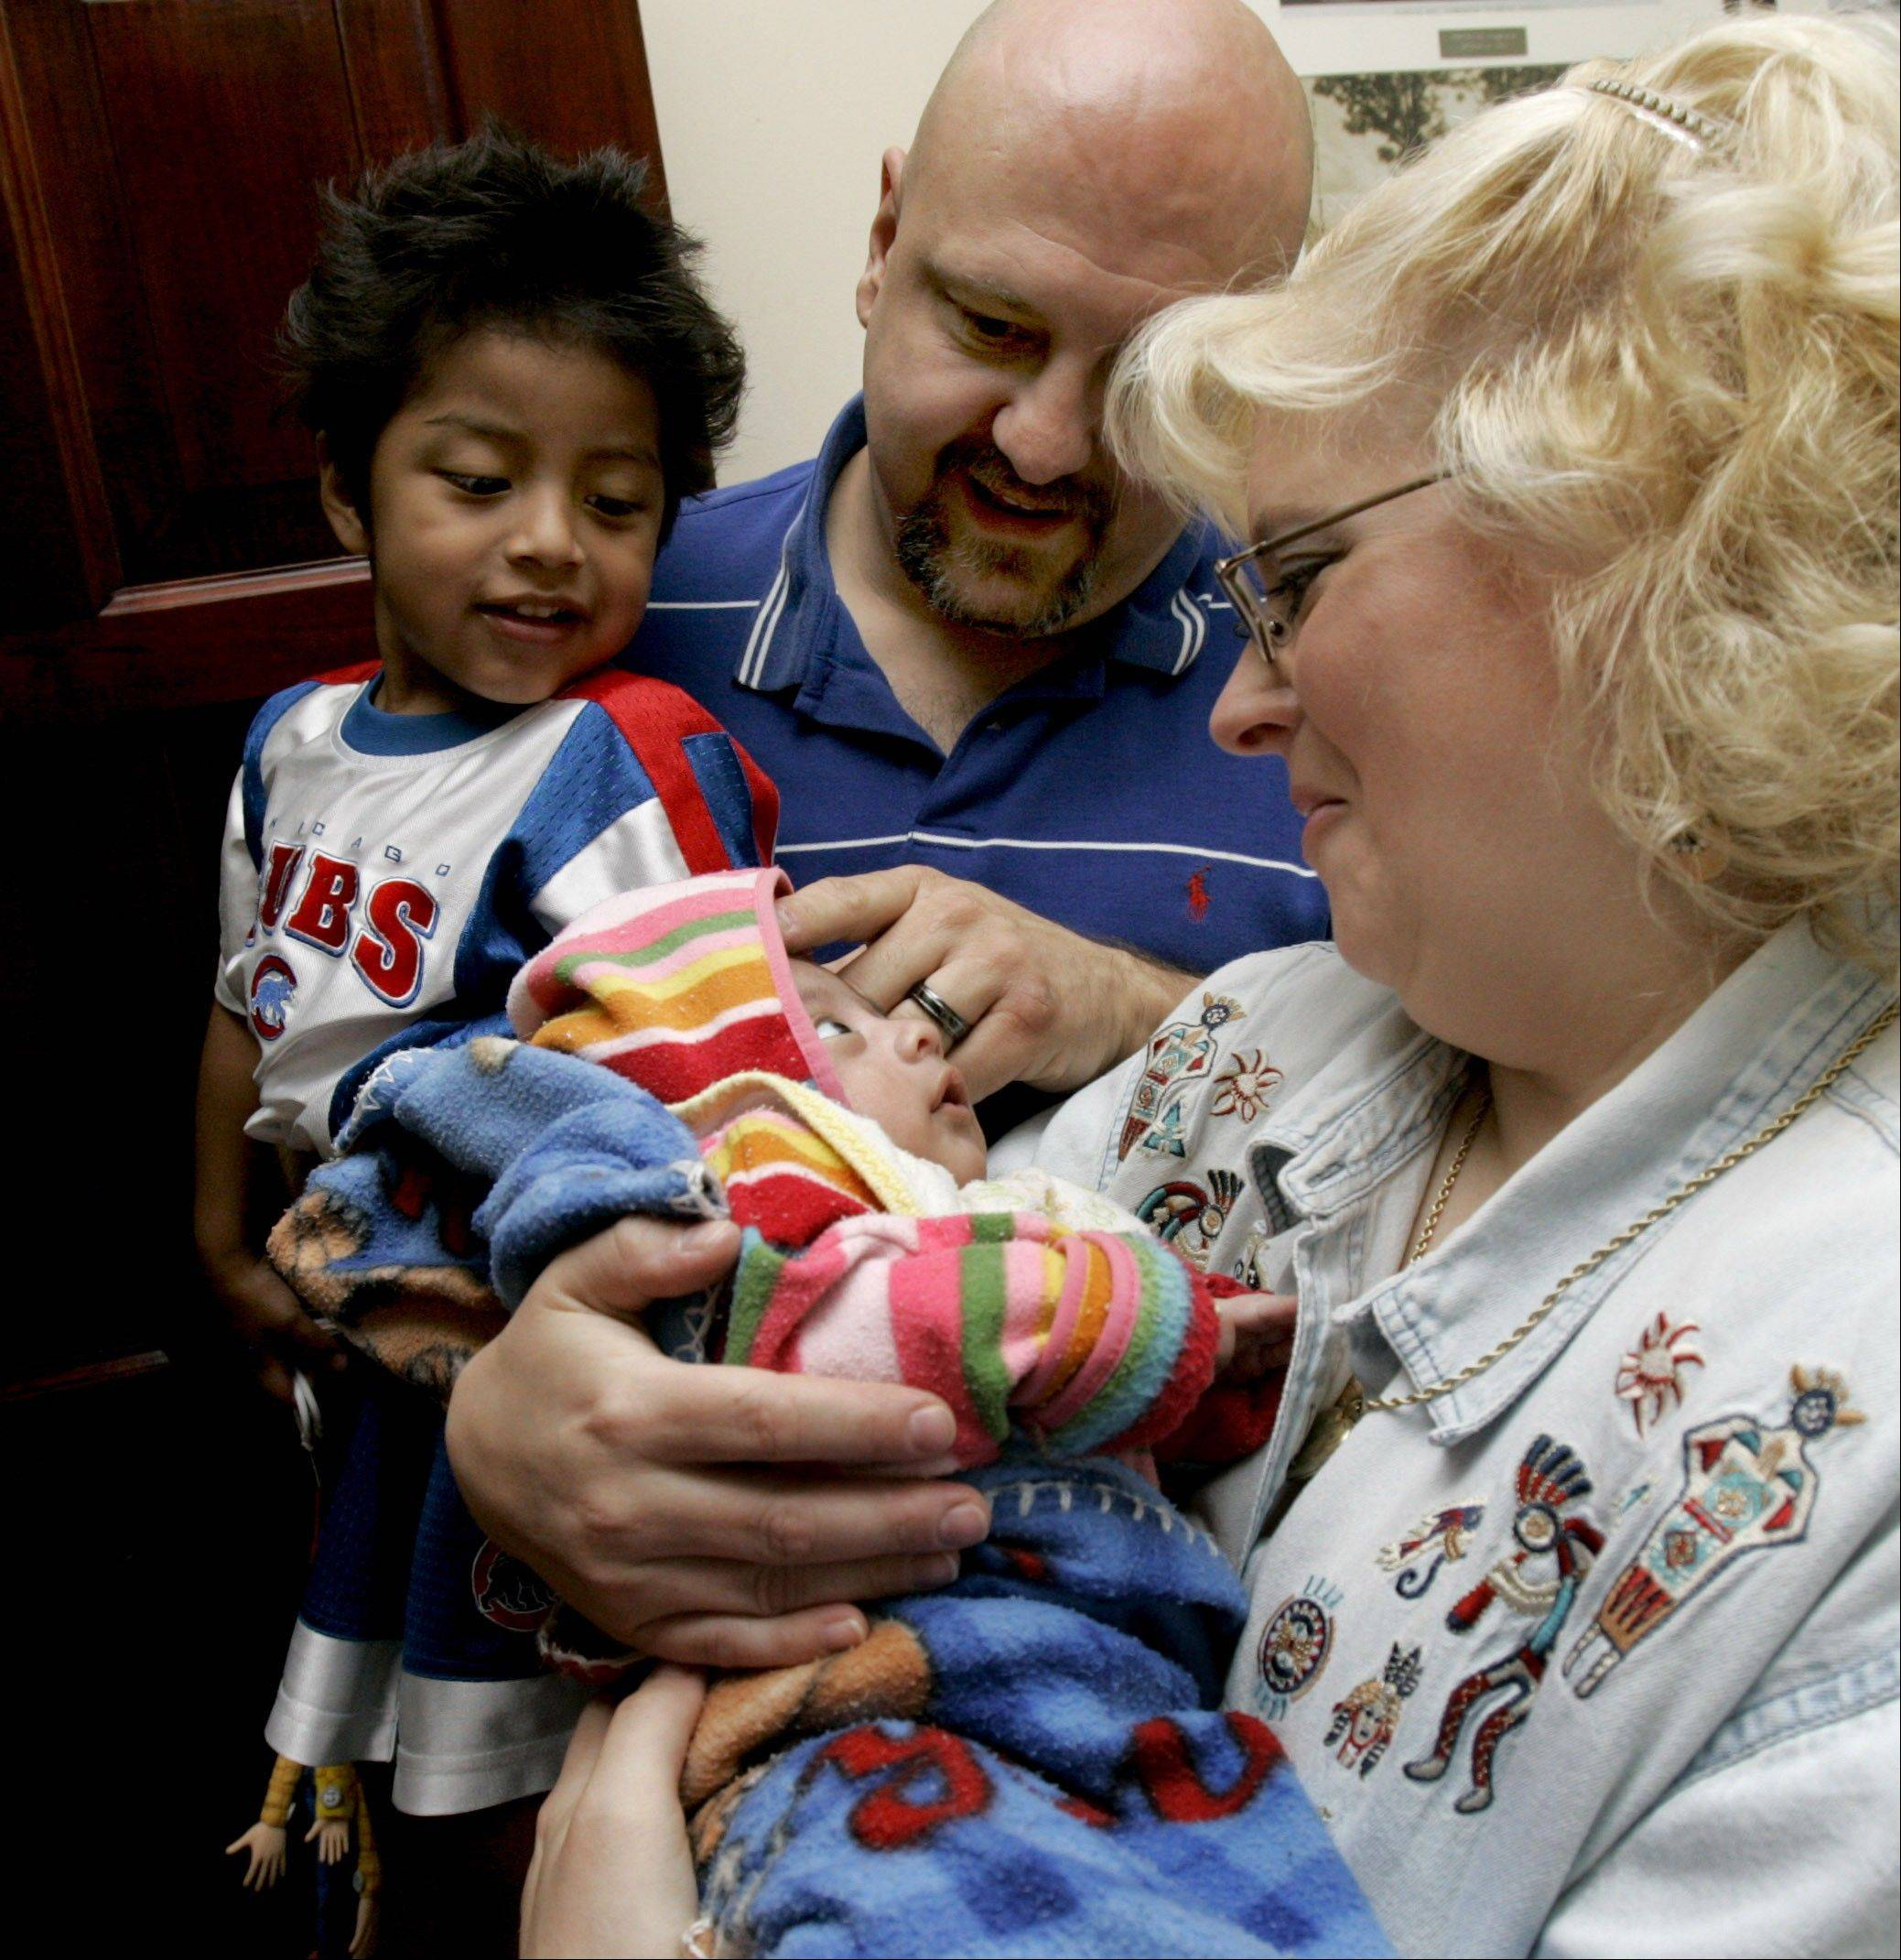 Bill and Kris Hull and son Myles meet their new son Clayton at a lawyer's office in Guatemala City. Bev Horne shot this photo during a 2006 series on international adoption.